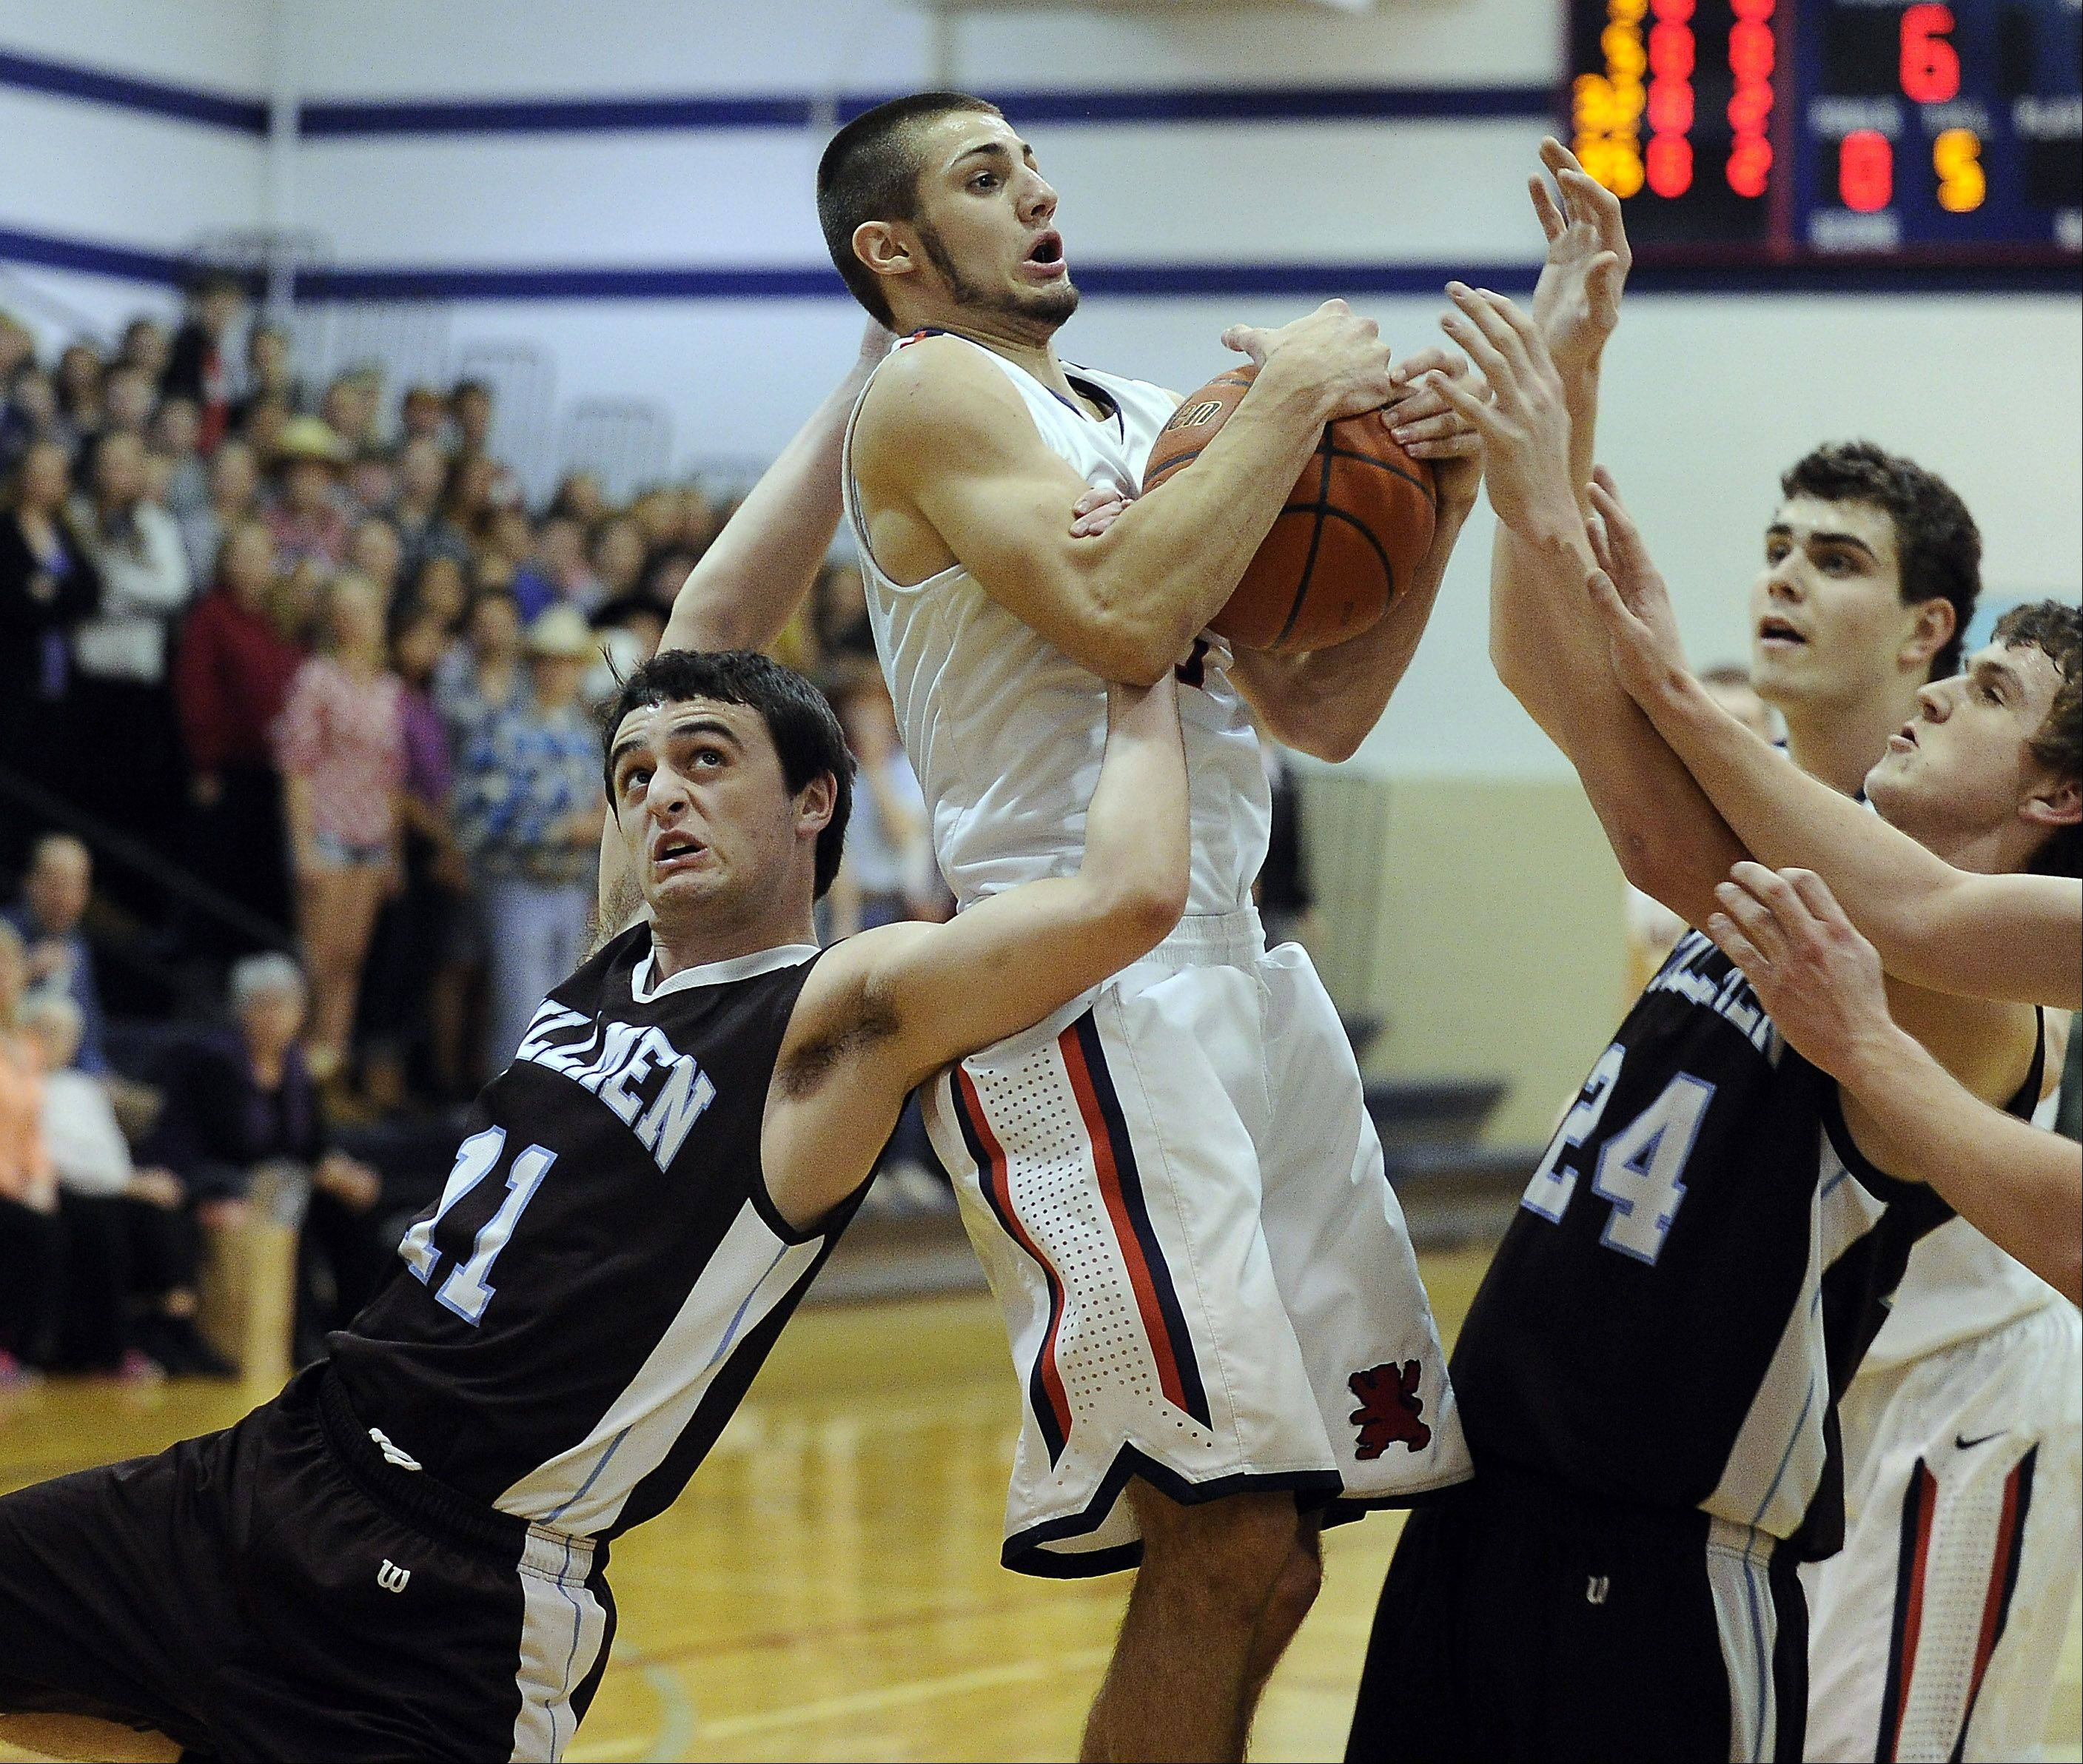 St. Viator's DJ Morris battles with Joliet Catholic Academy's Grant Larussa for the ball during Thursday's game at St. Viator.